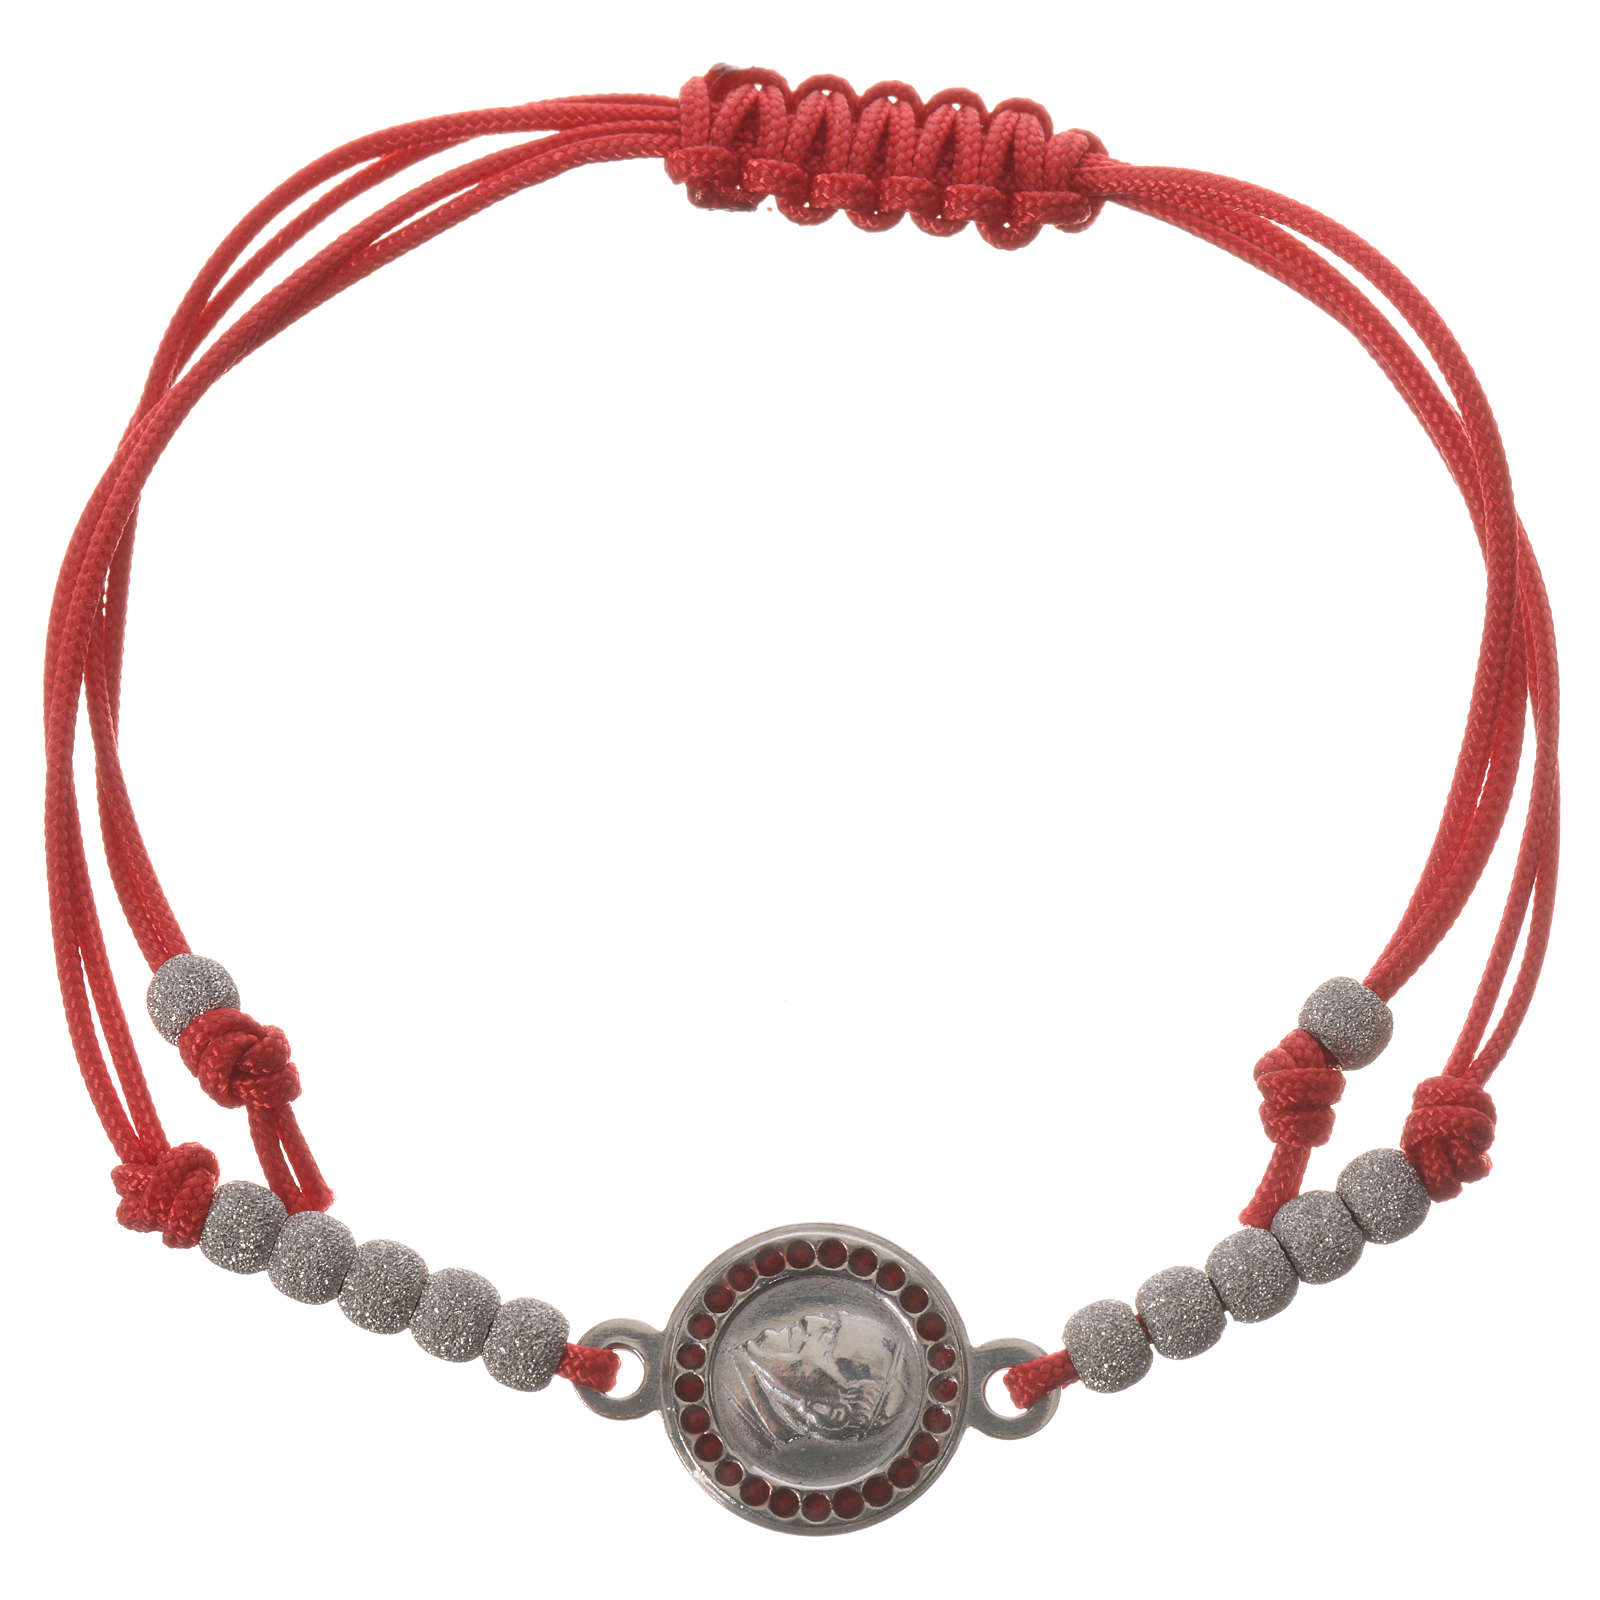 Bracelet with red cord and Pope Francis medal in 800 silver 4